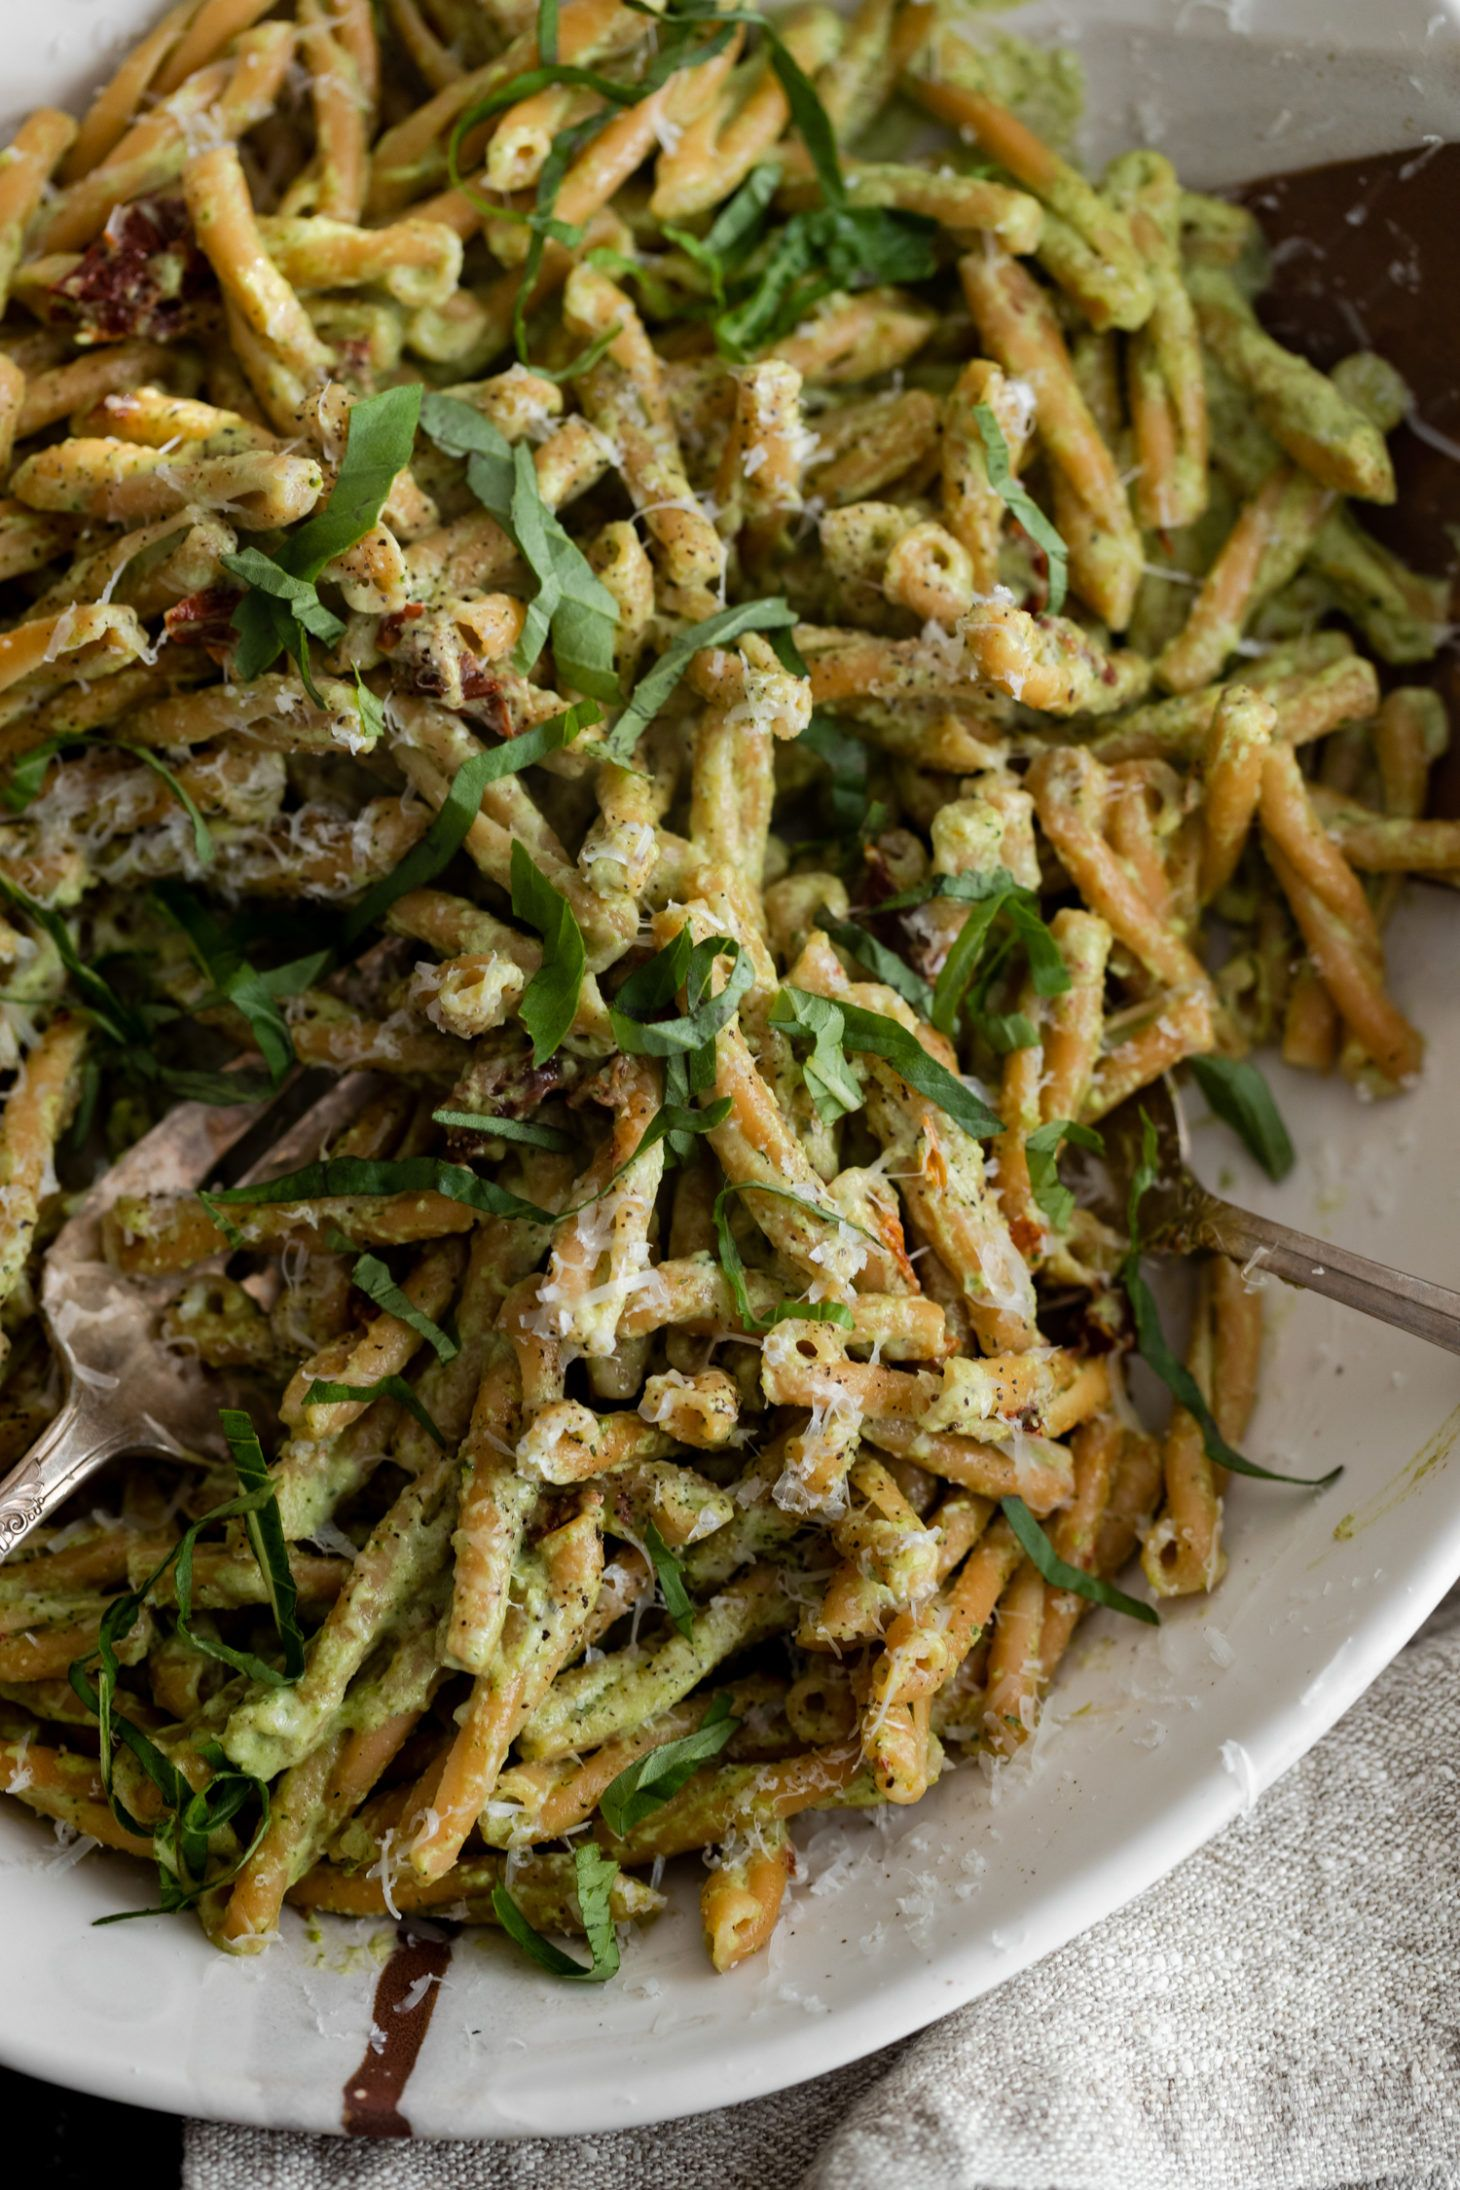 Broccoli Pesto Pasta With Chickpea Casarecce